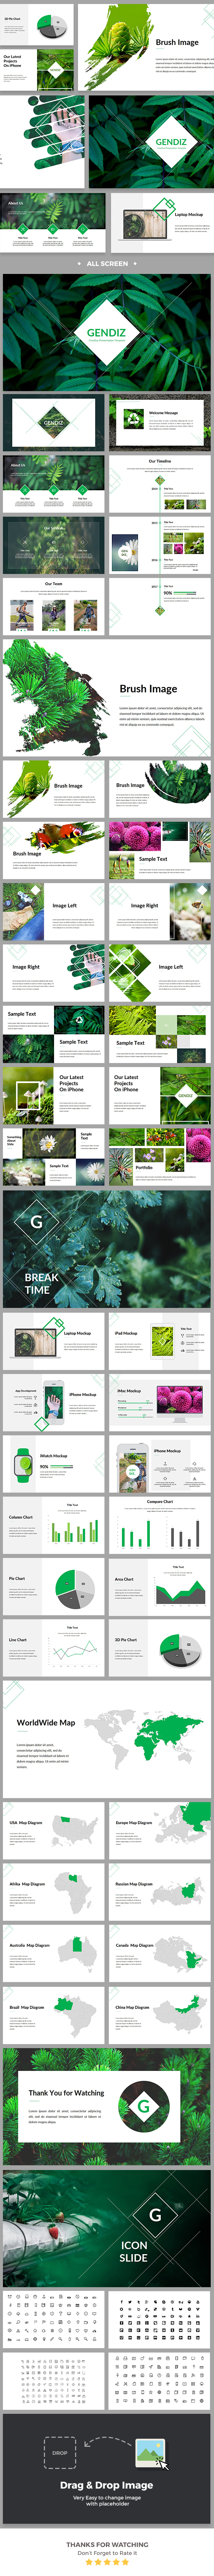 Gendiz Keynote Template - Business Keynote Templates